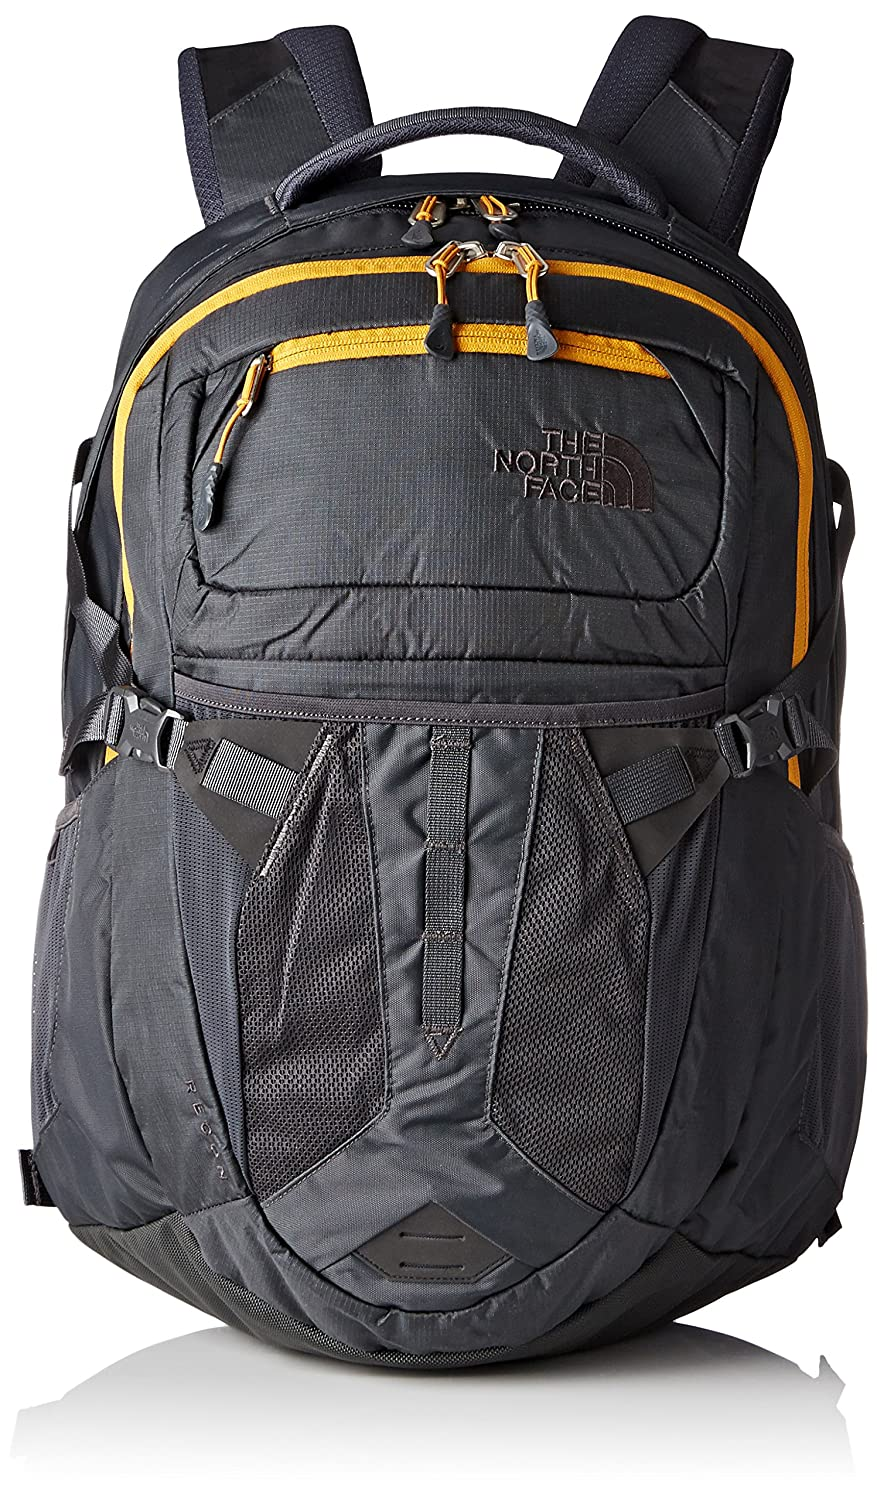 north face backpack amazon